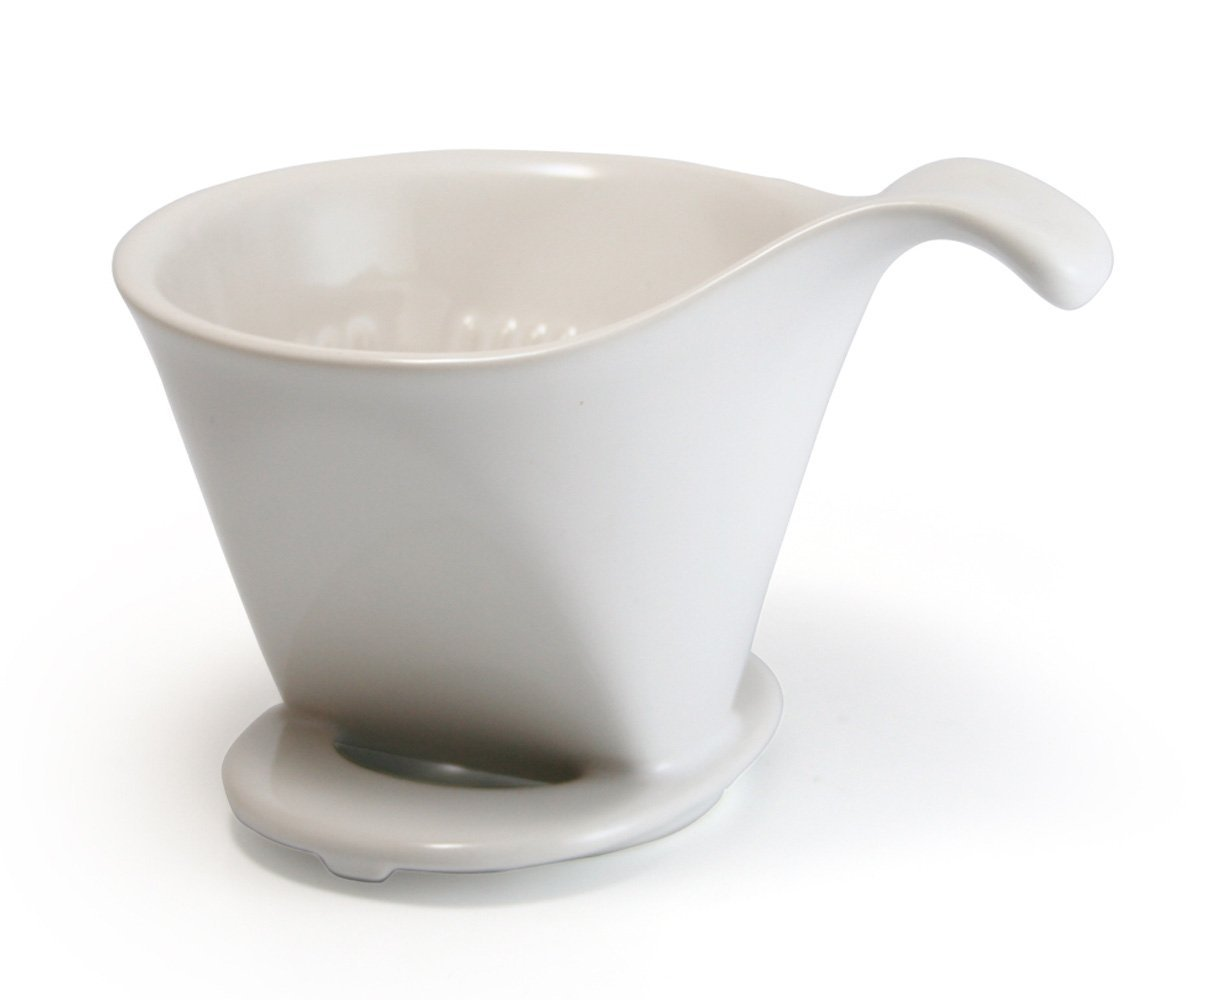 Bee House Ceramic Pour Over Coffee Maker Dripper - Large - Drip Cone -White eBay